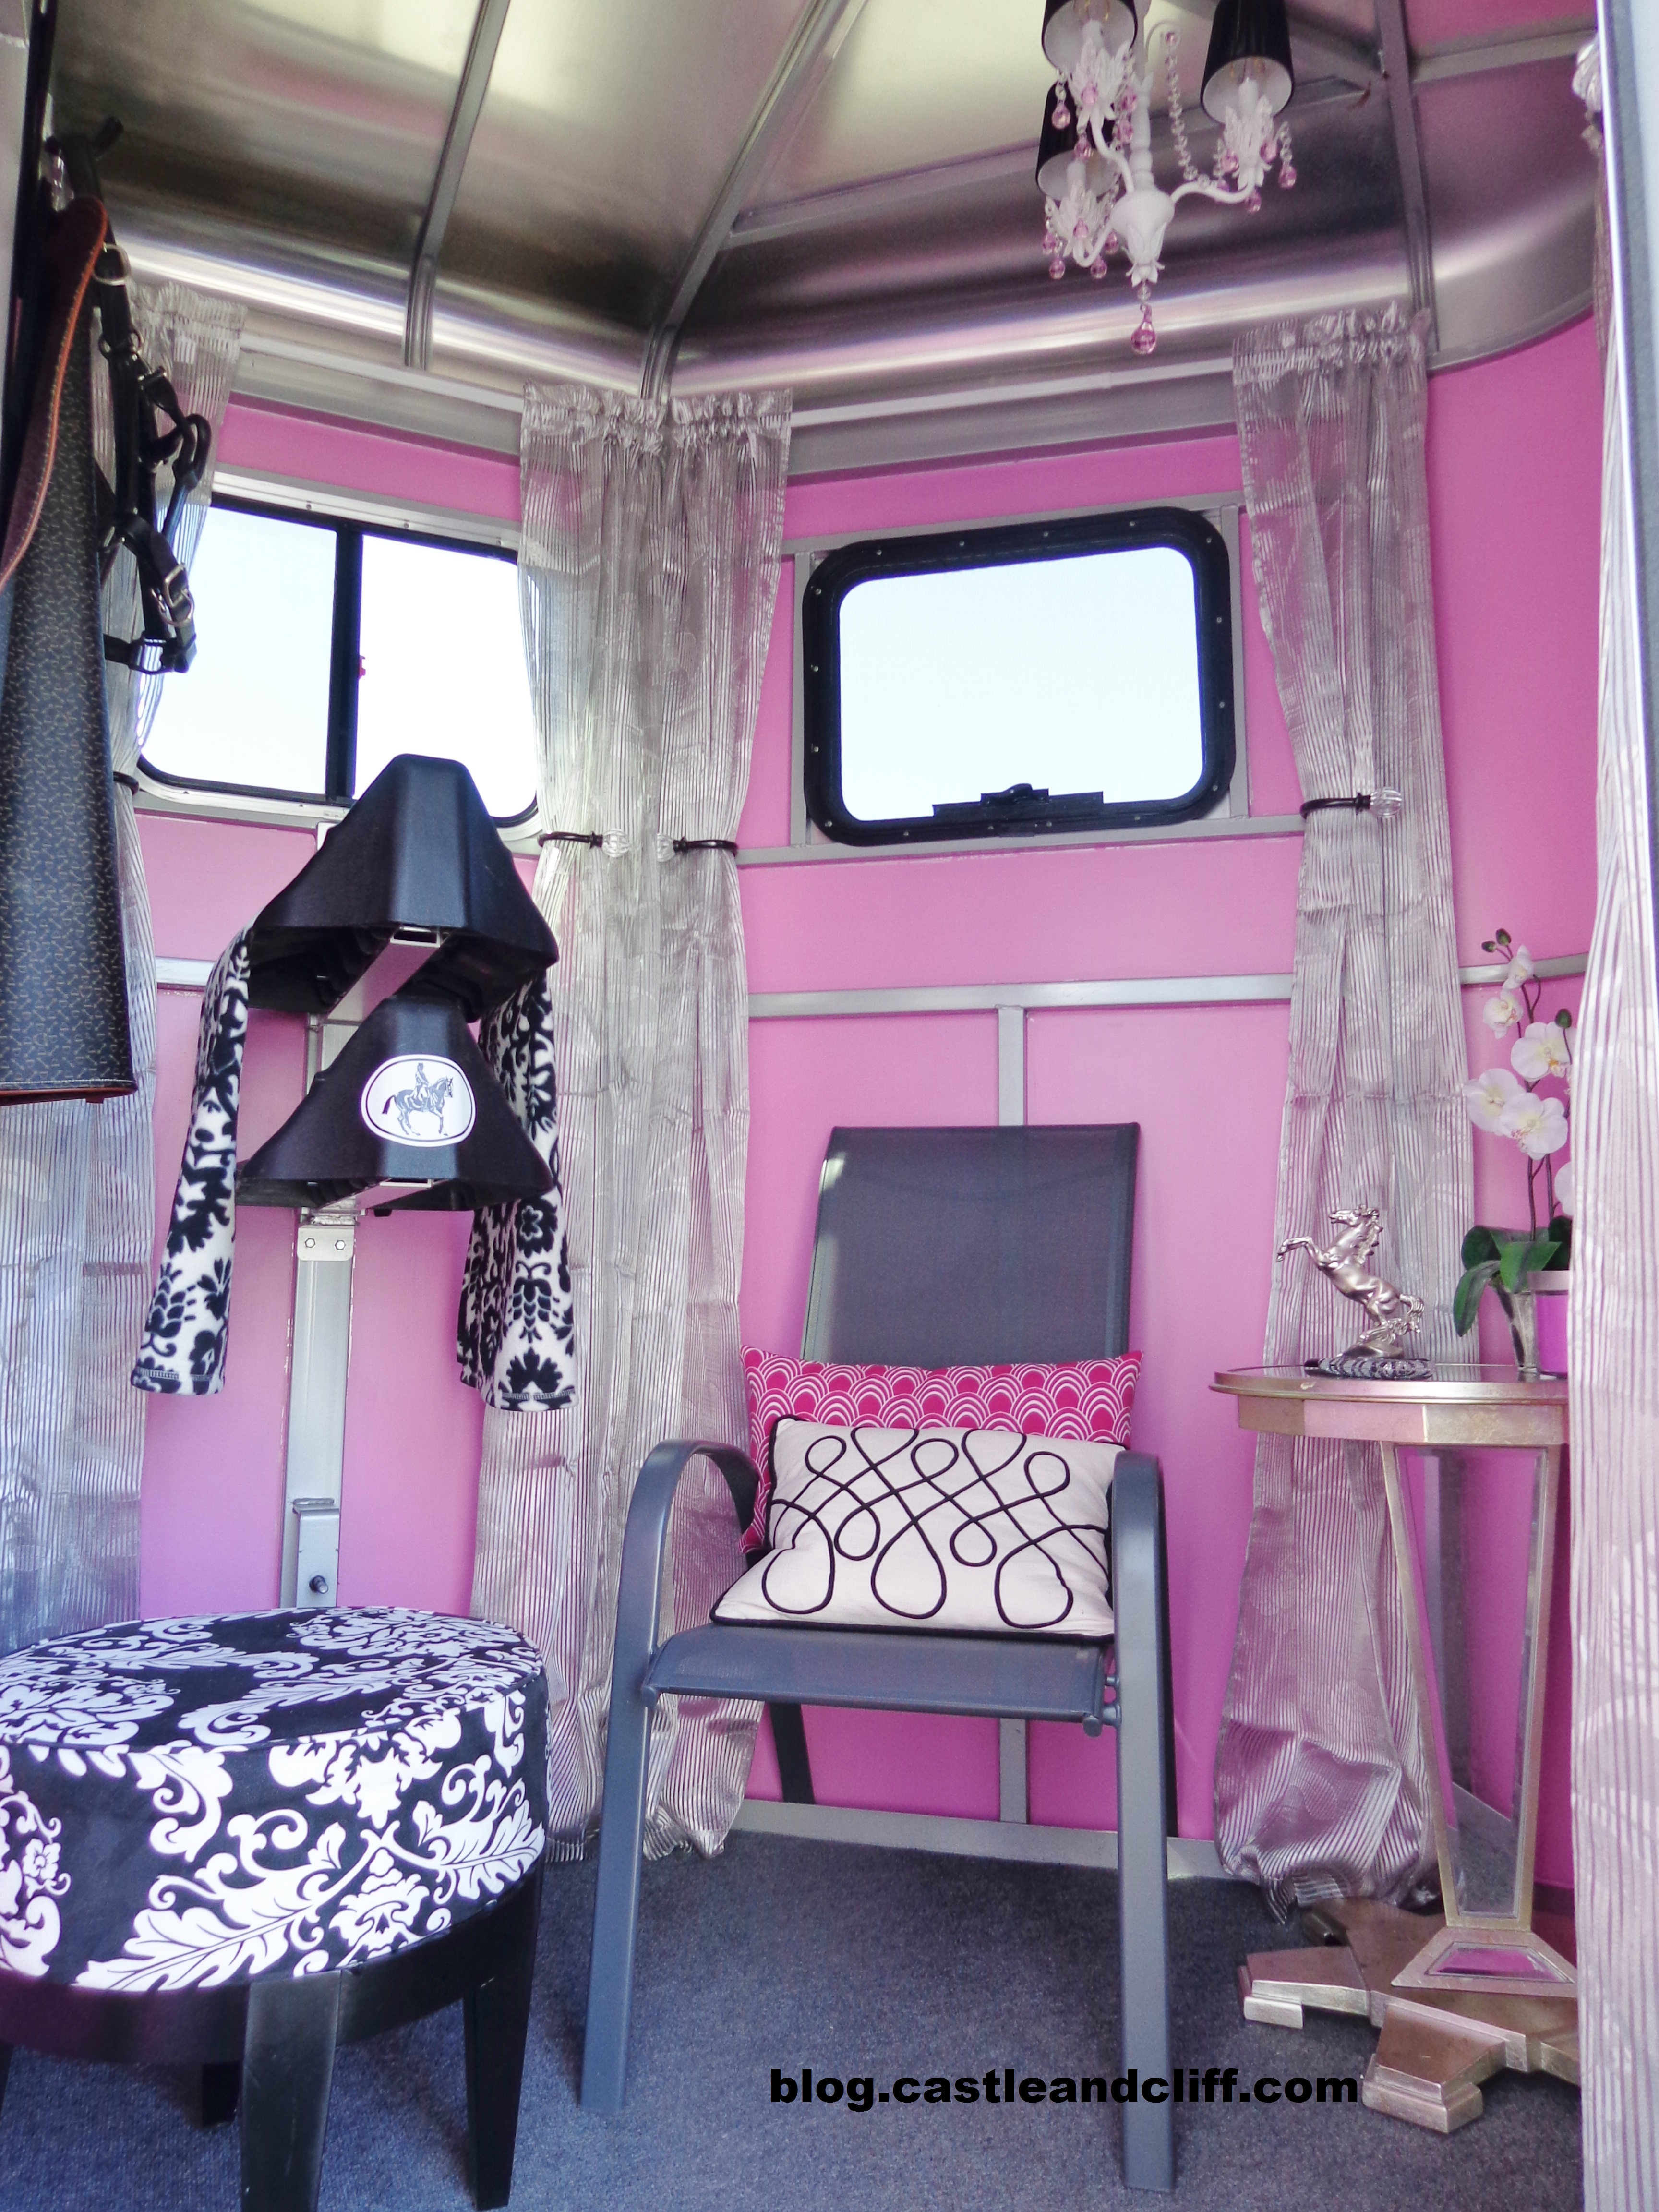 December 2012 castle and cliff blog - Trailer bedroom ideas ...